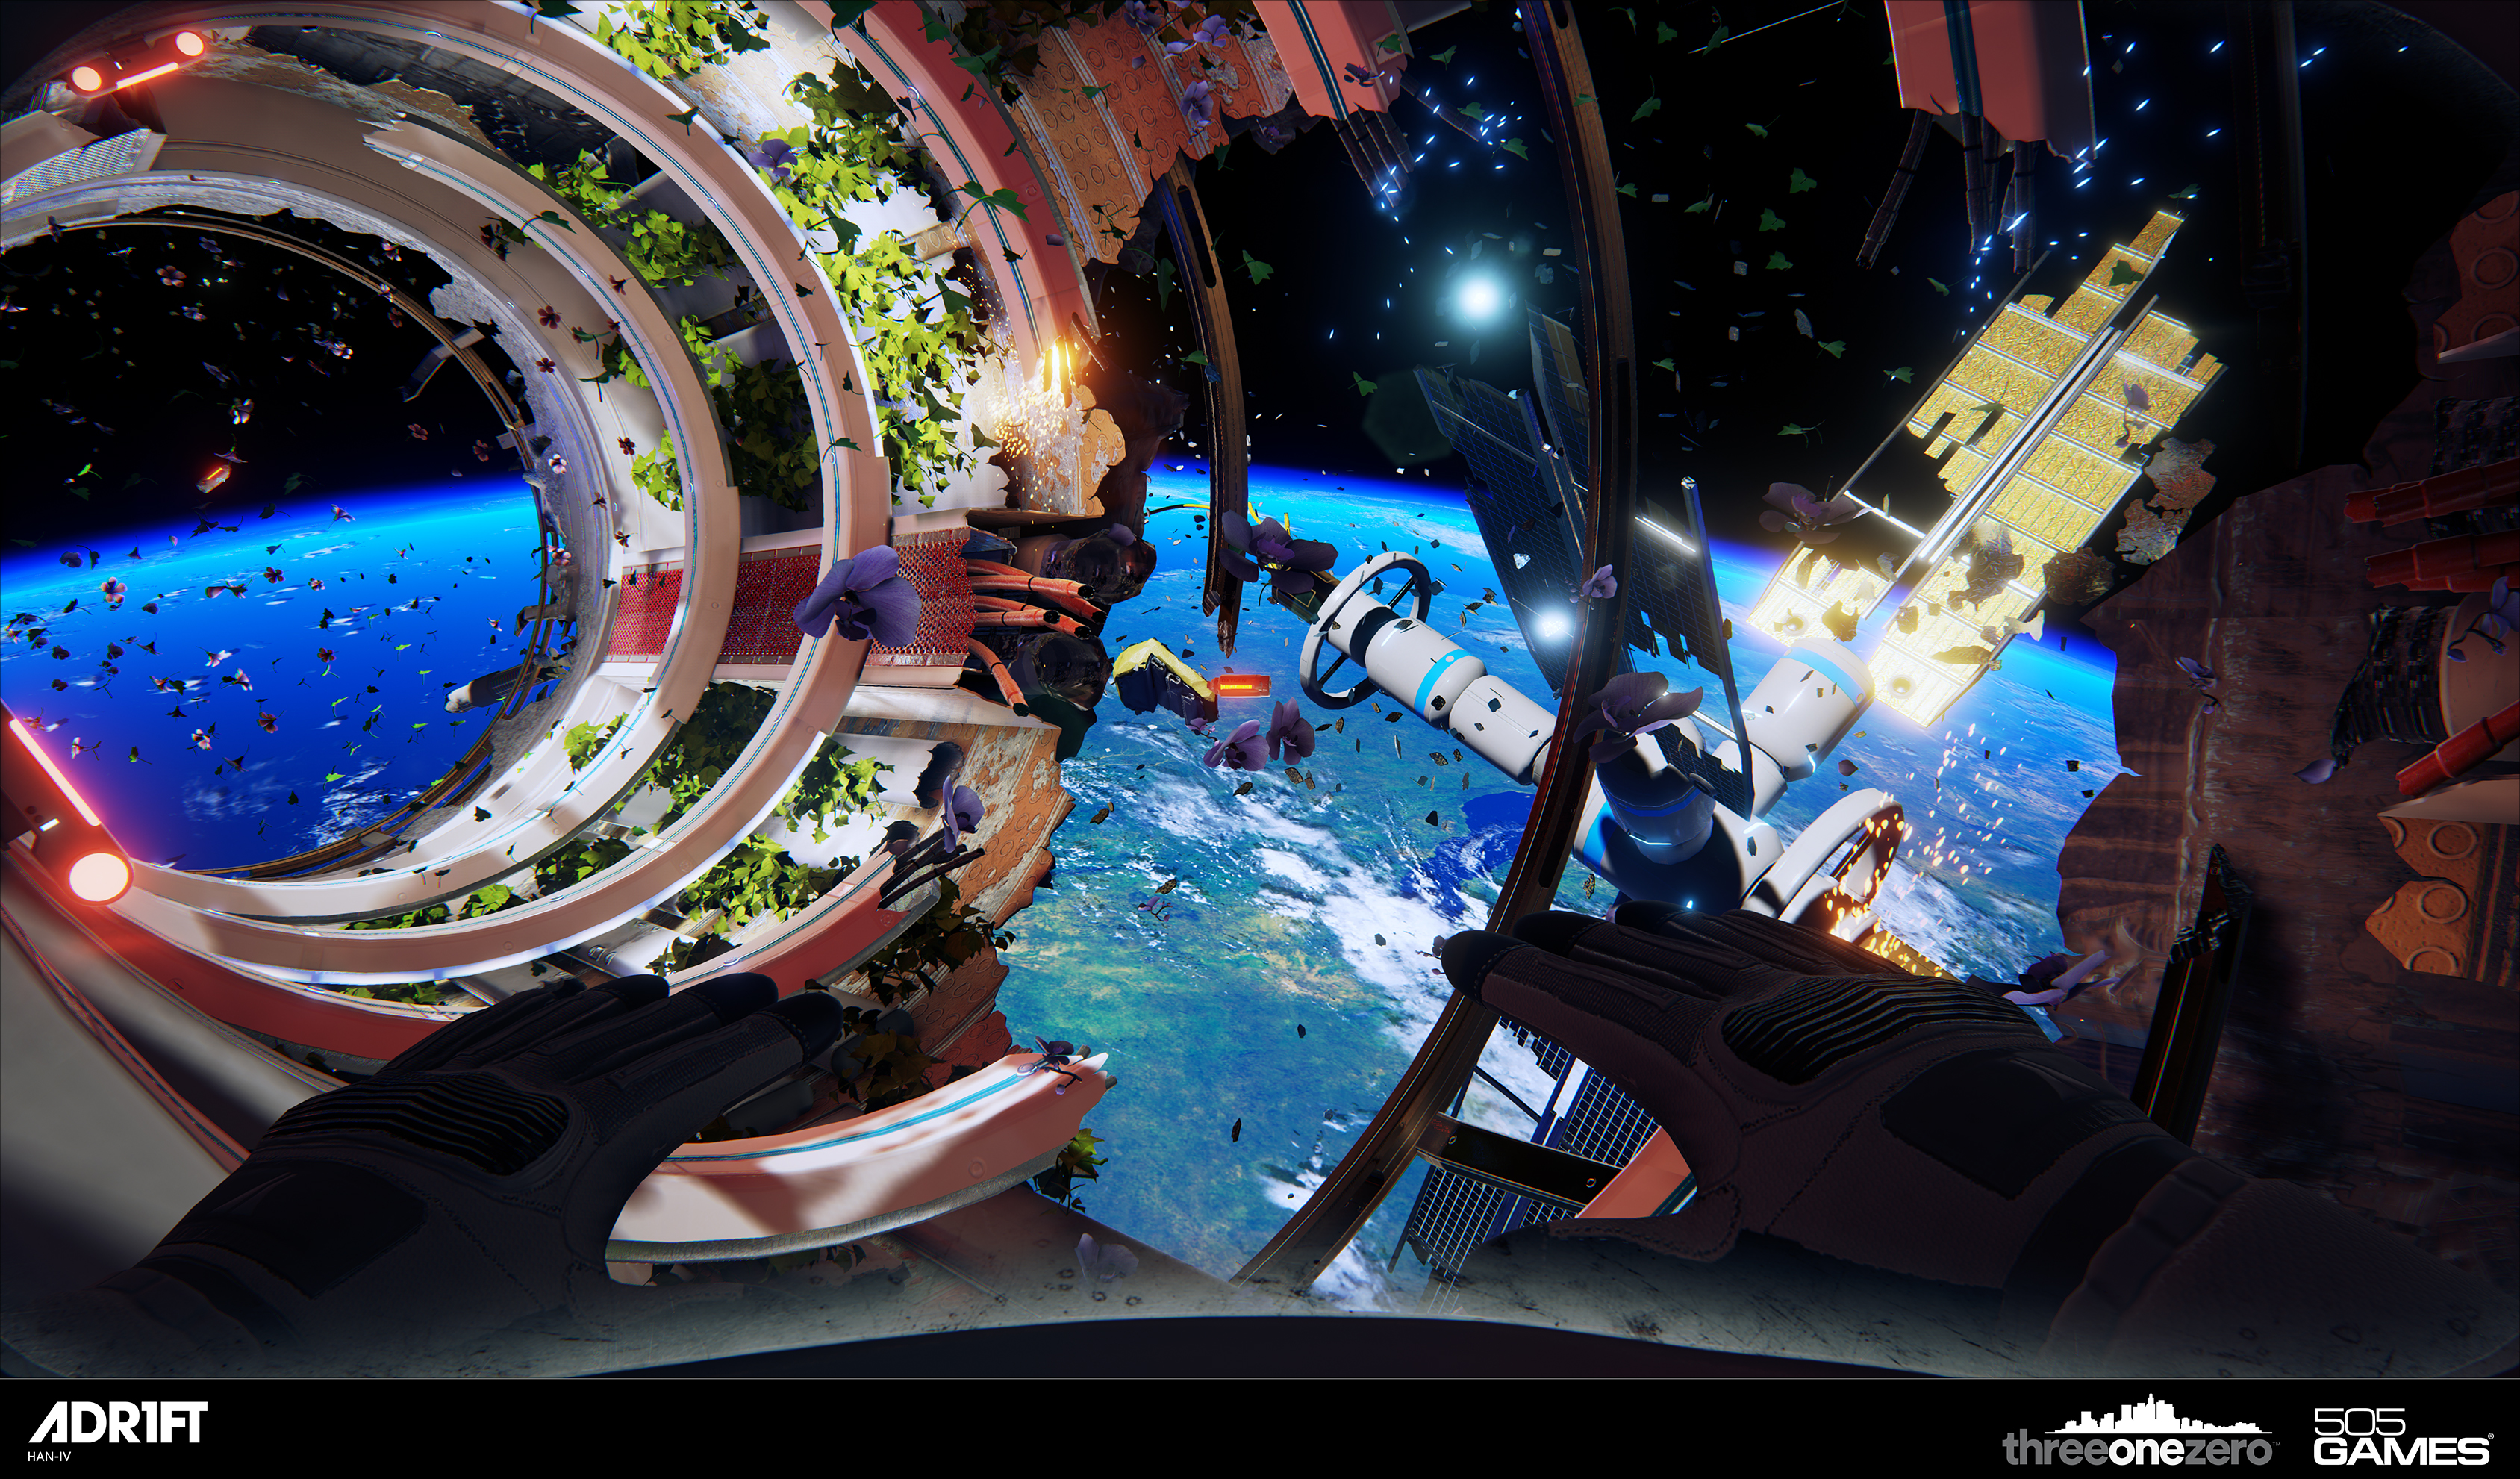 Creating Adrift: the space survival game that will make you love VR